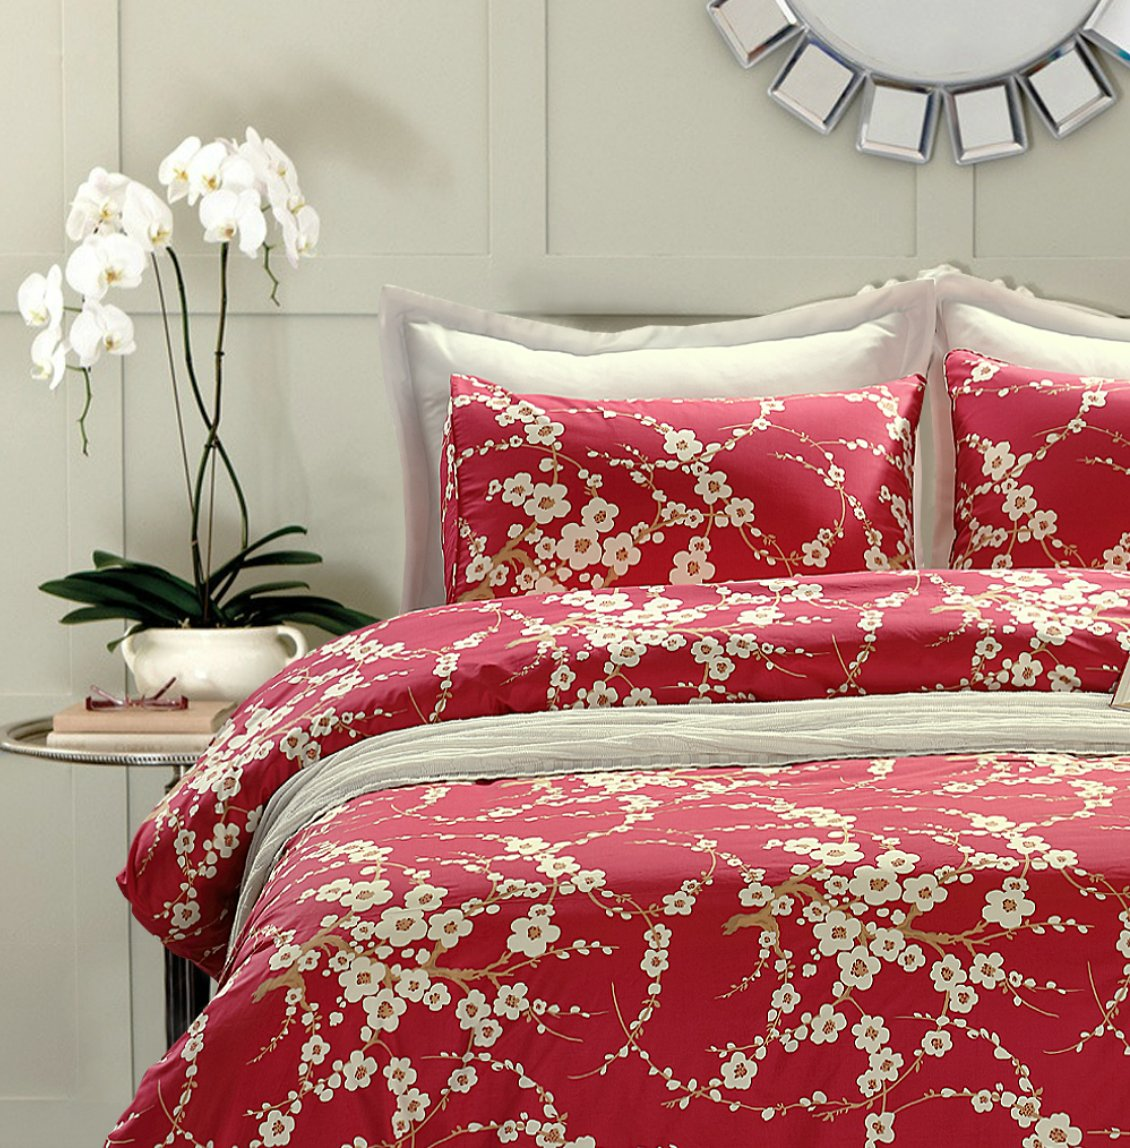 Lovely Cute And Trendy Cherry Blossom Room Decor